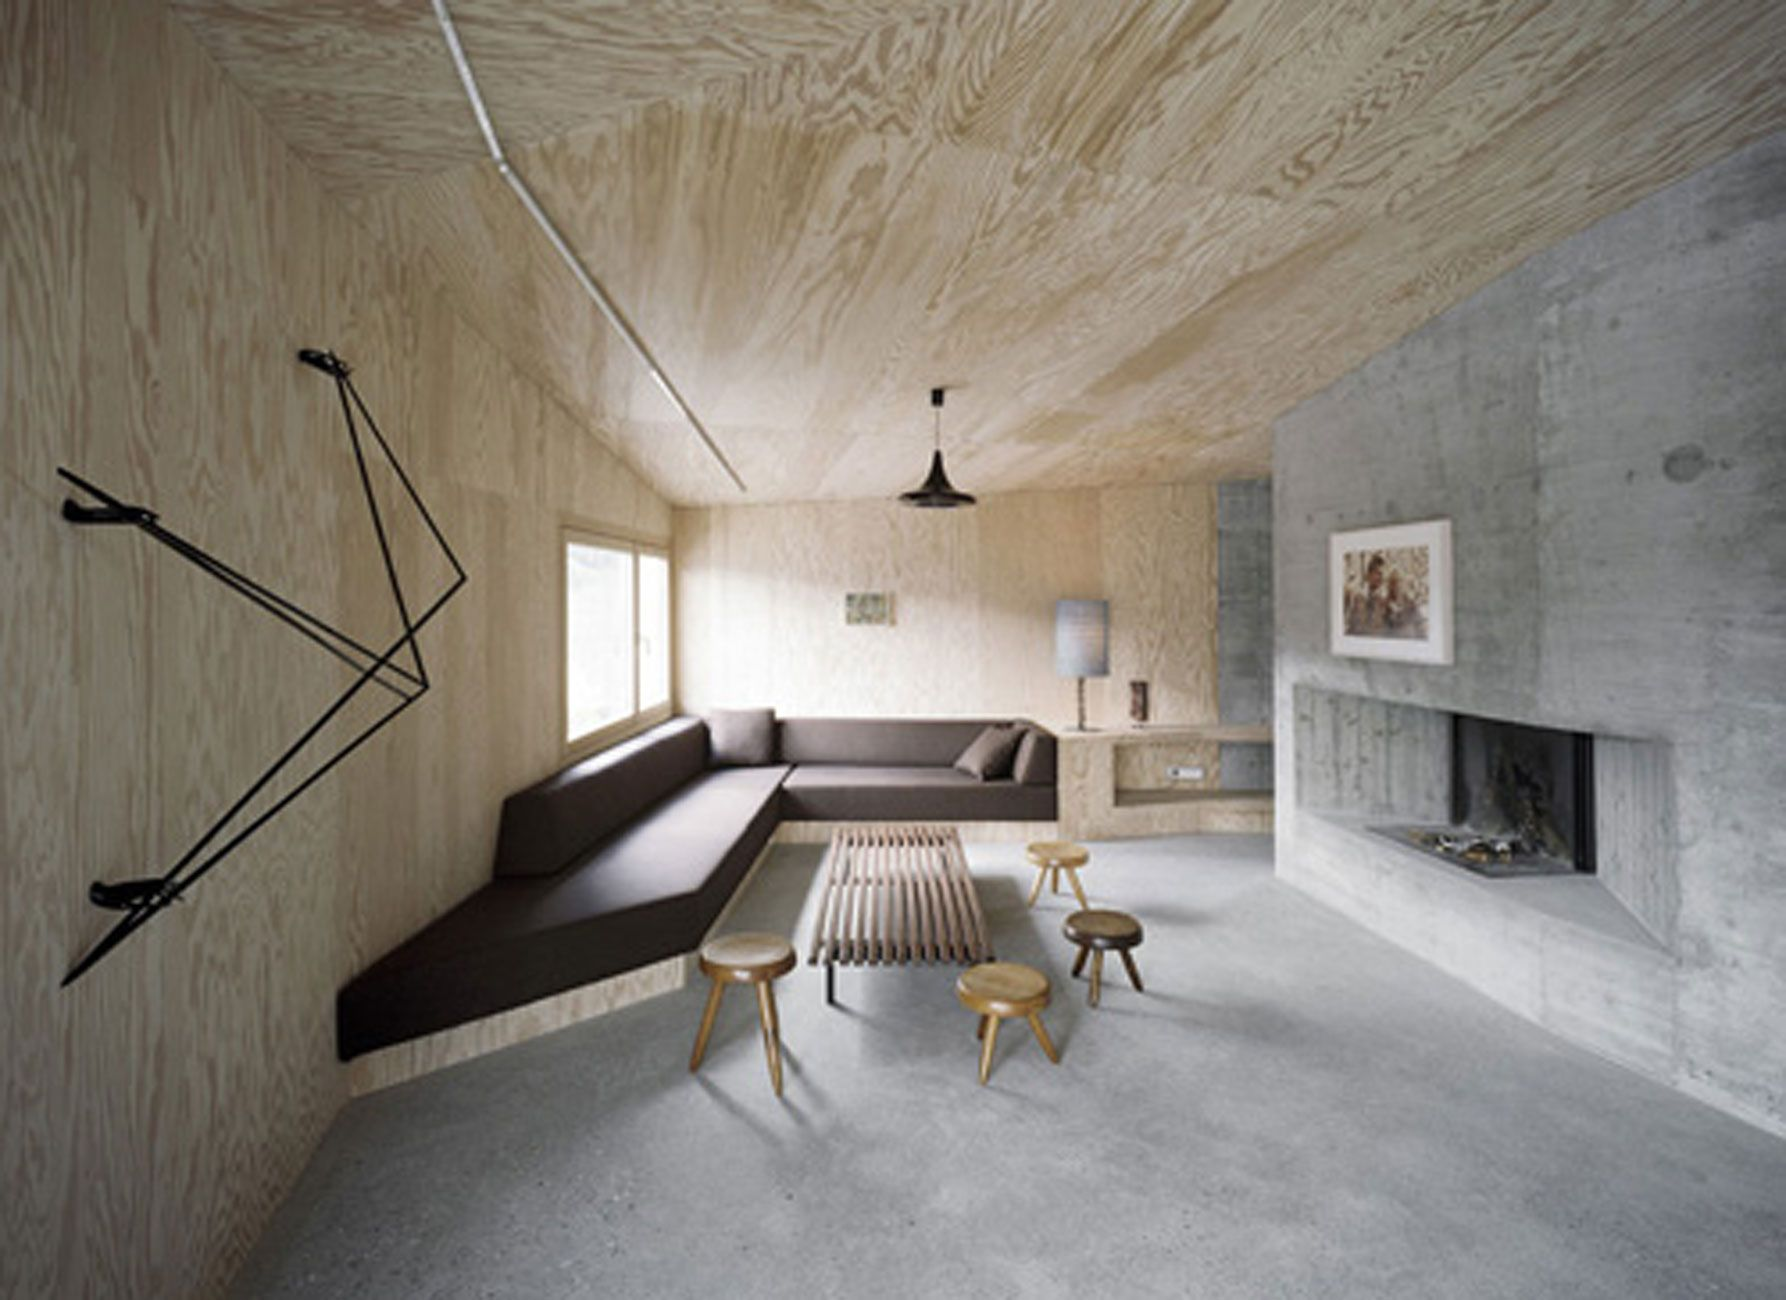 Solid concrete house architecture and minimalist interior for Minimalist house interior design